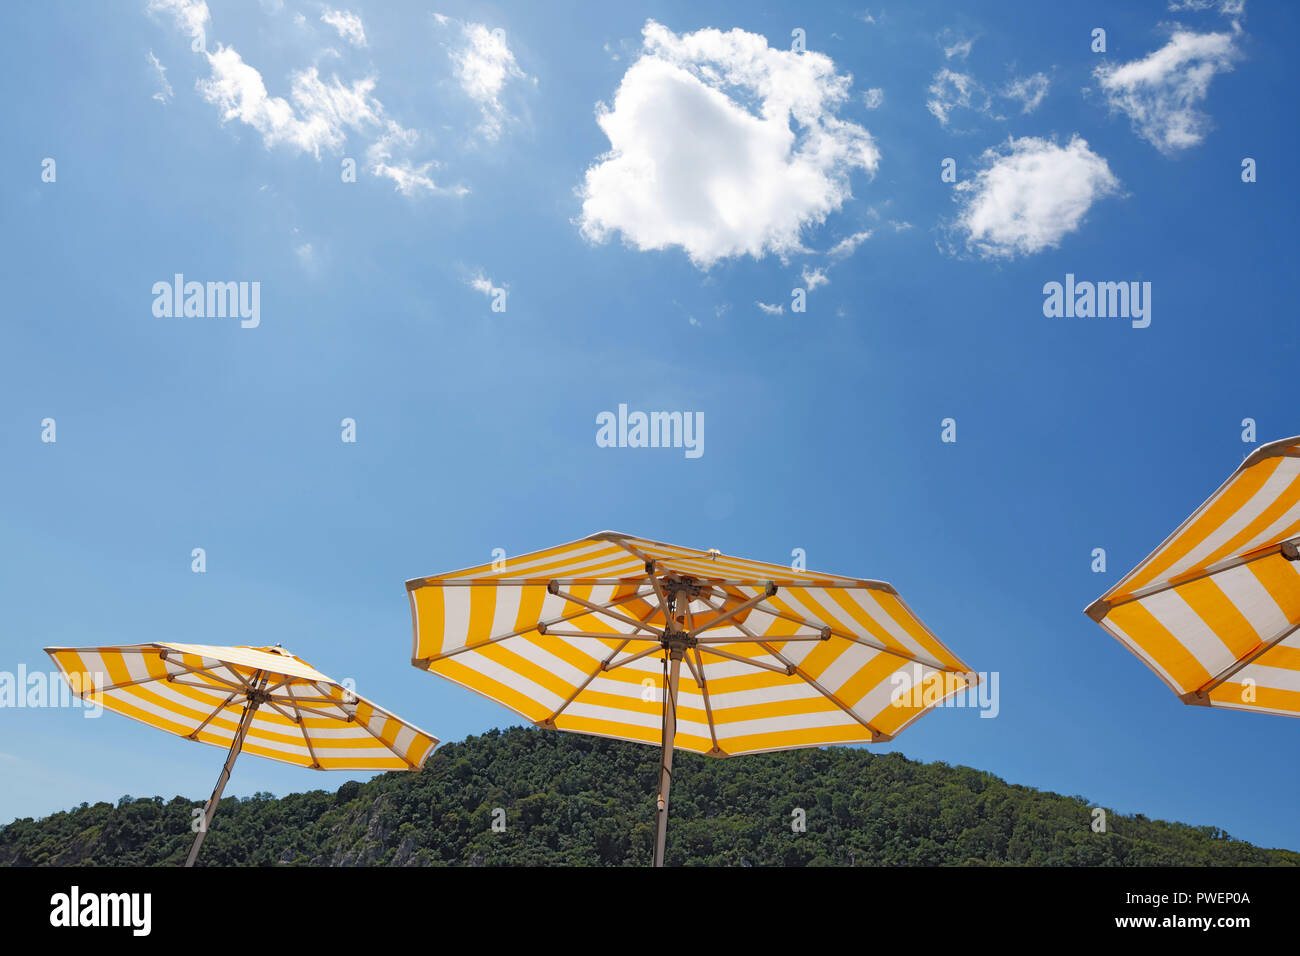 three parasols on a cruise ship against the blue sky, yellow and white, cumulus clouds, holiday, freetime, recreation, relaxation, sunlight, sunshine, shelter from sun, unpeopled, travel, cruise, tourism - Stock Image